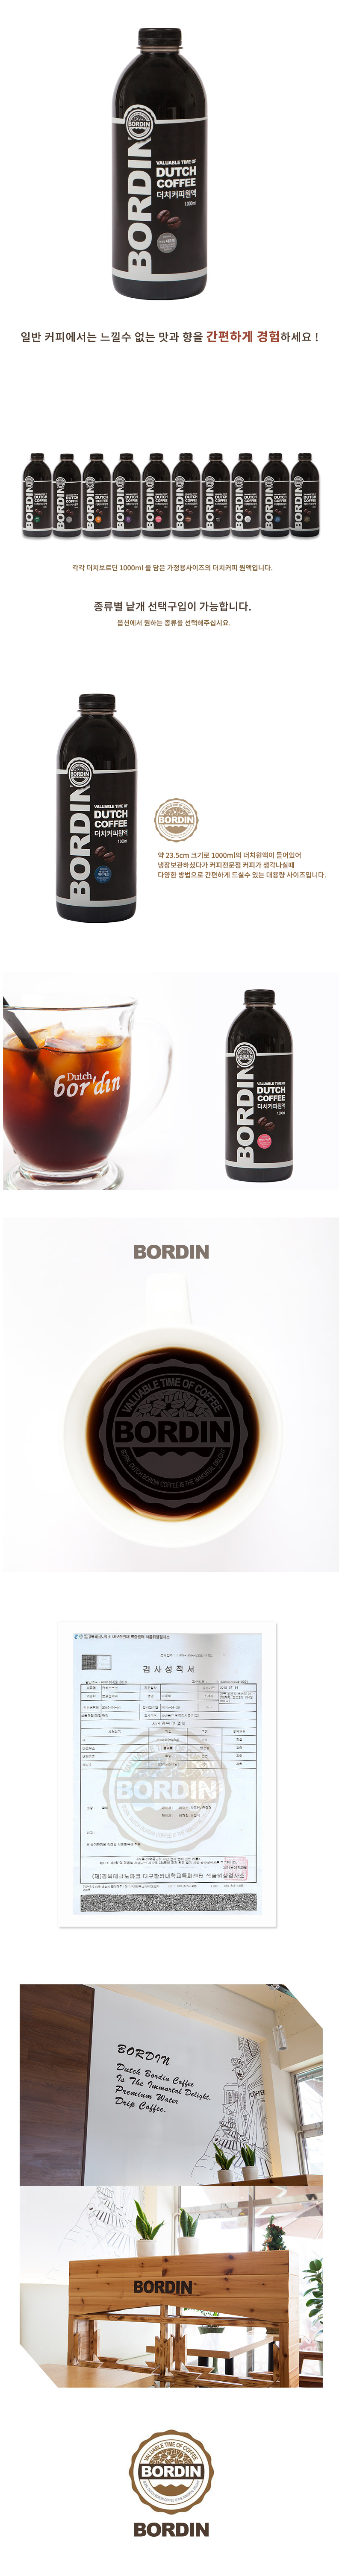 bordin-1000ml6_03.jpg